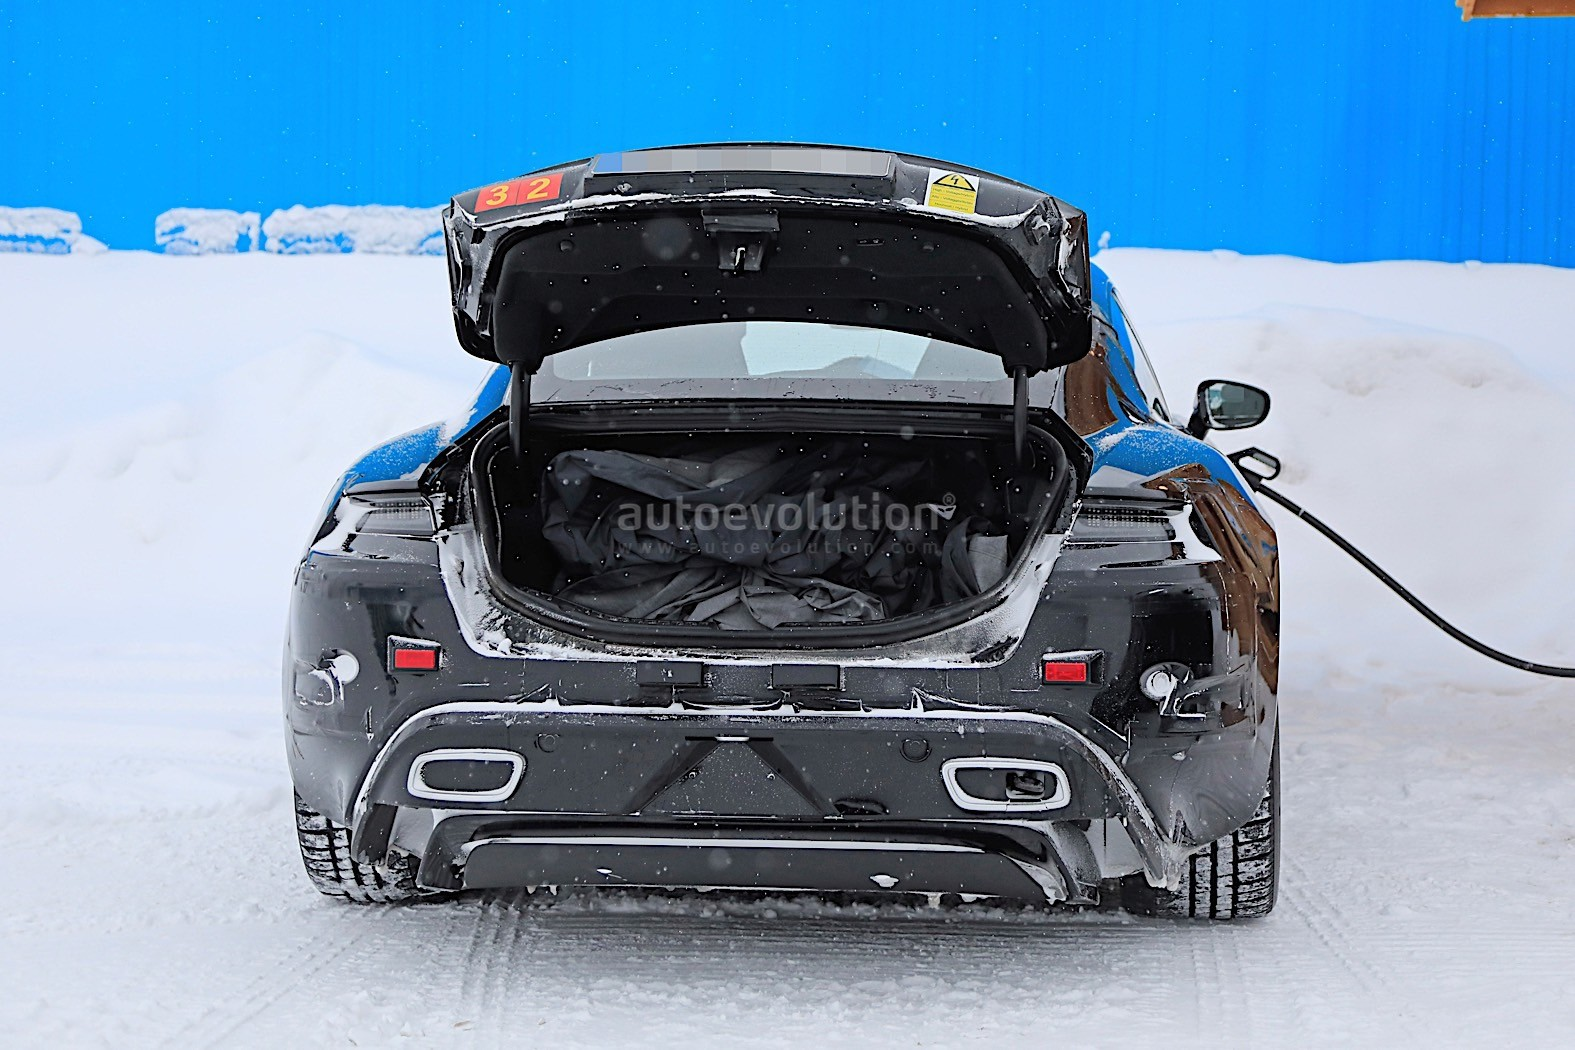 2019 - [Porsche] Taycan [J1] - Page 4 Porsche-taycan-caught-charging-paparazzis-have-a-field-day_14